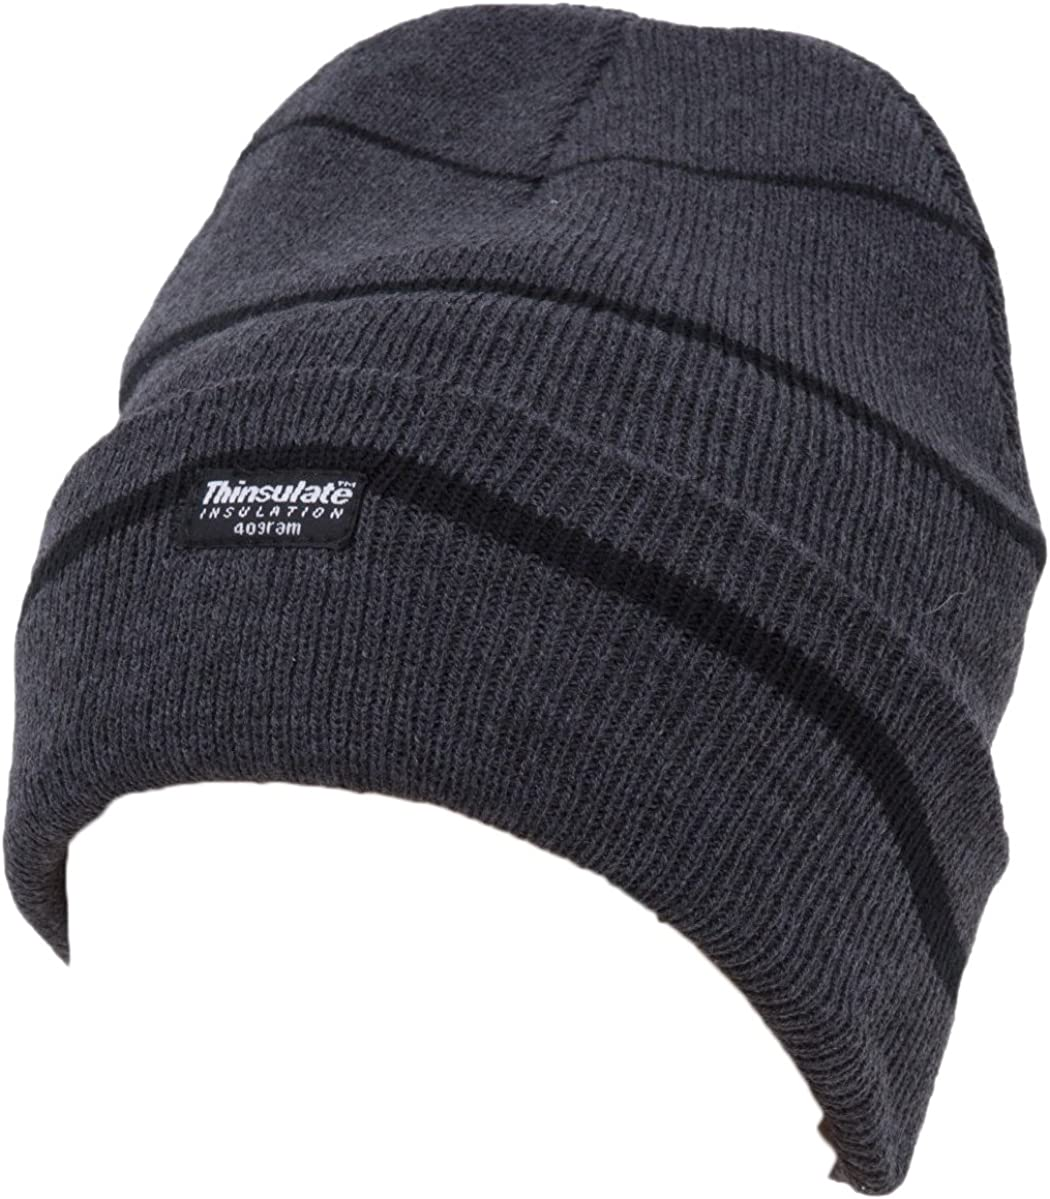 Chapeau Adultes Homme à rayures Thinsulate-Hiver Beanie Hat-taille unique